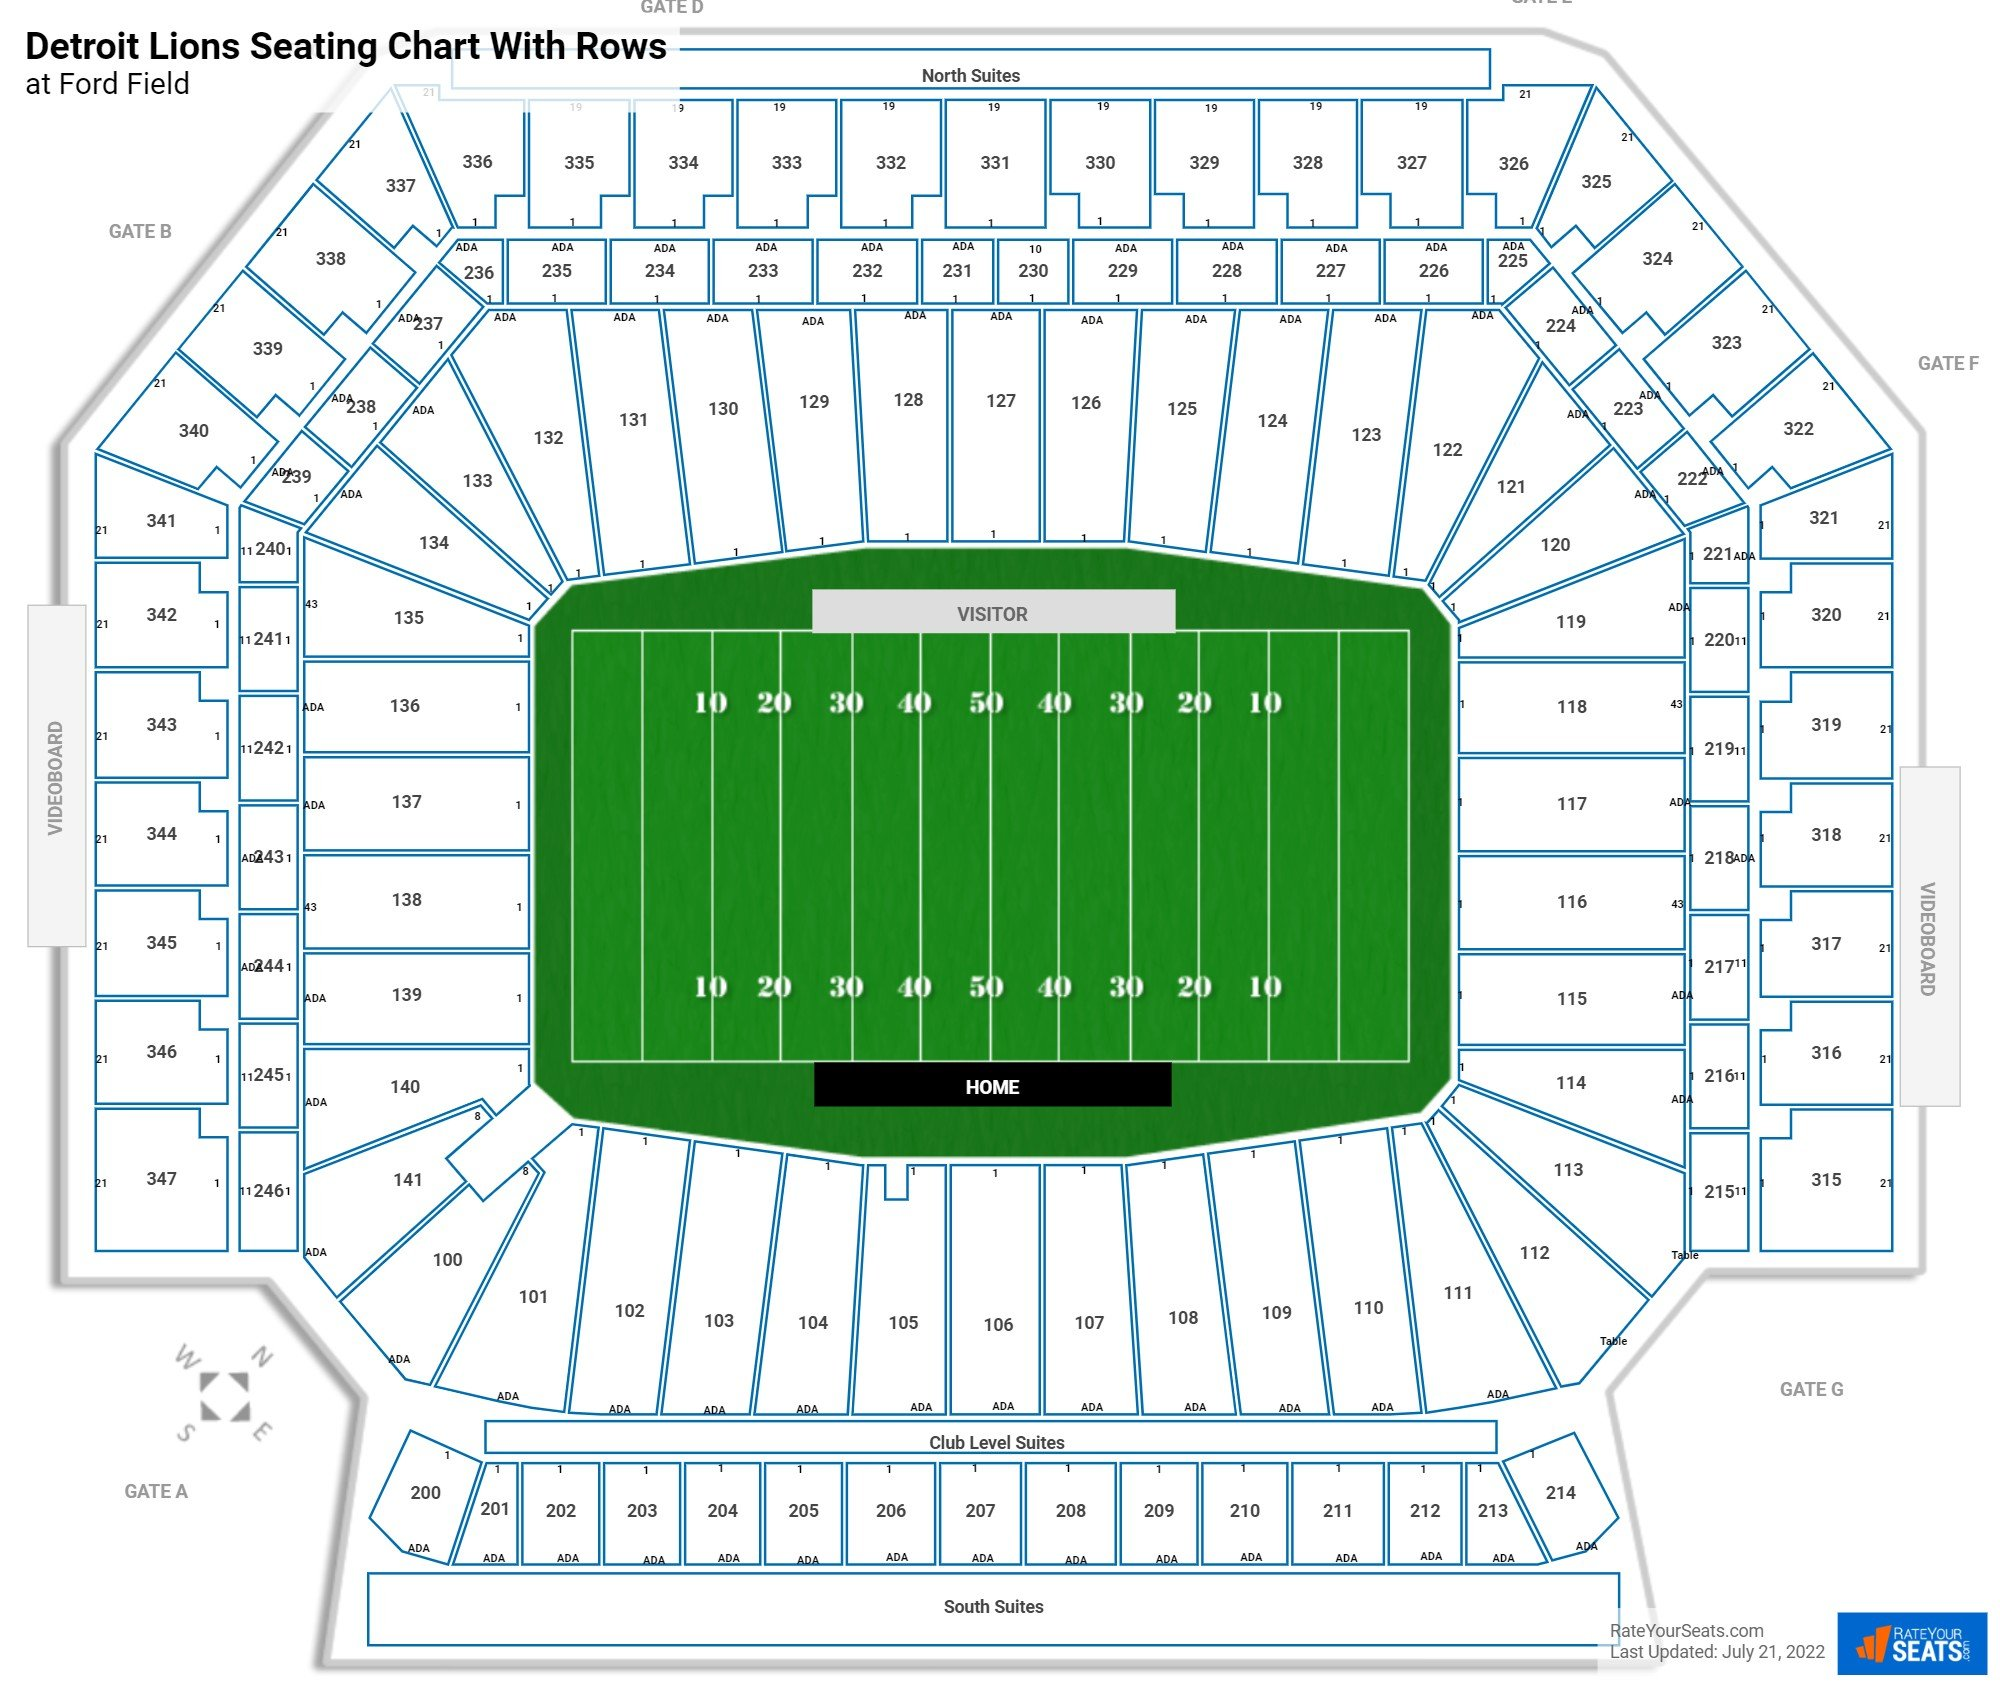 Ford Field seating chart with rows football